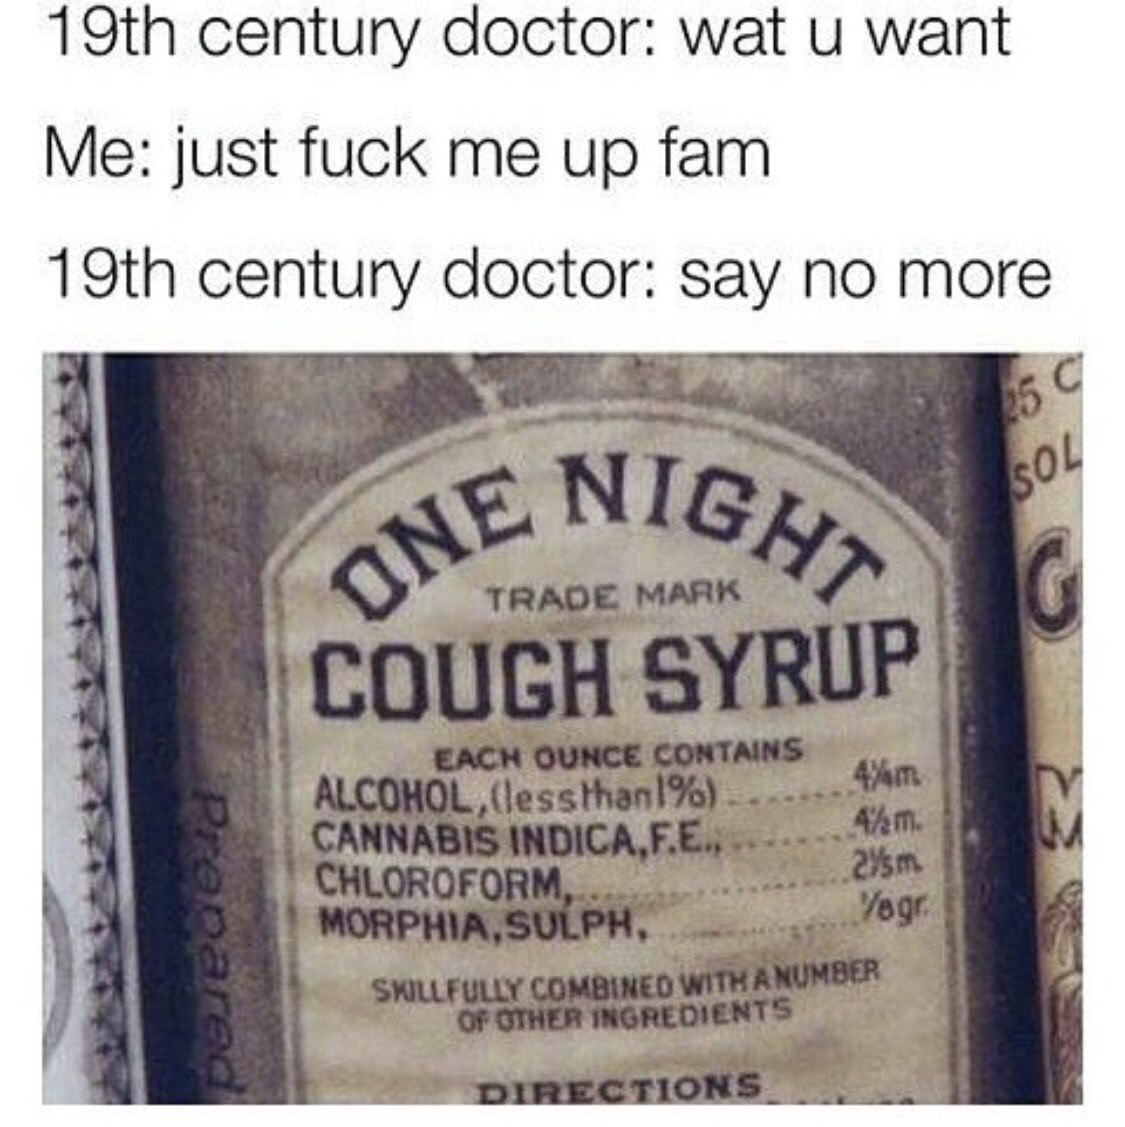 Just the right medicine